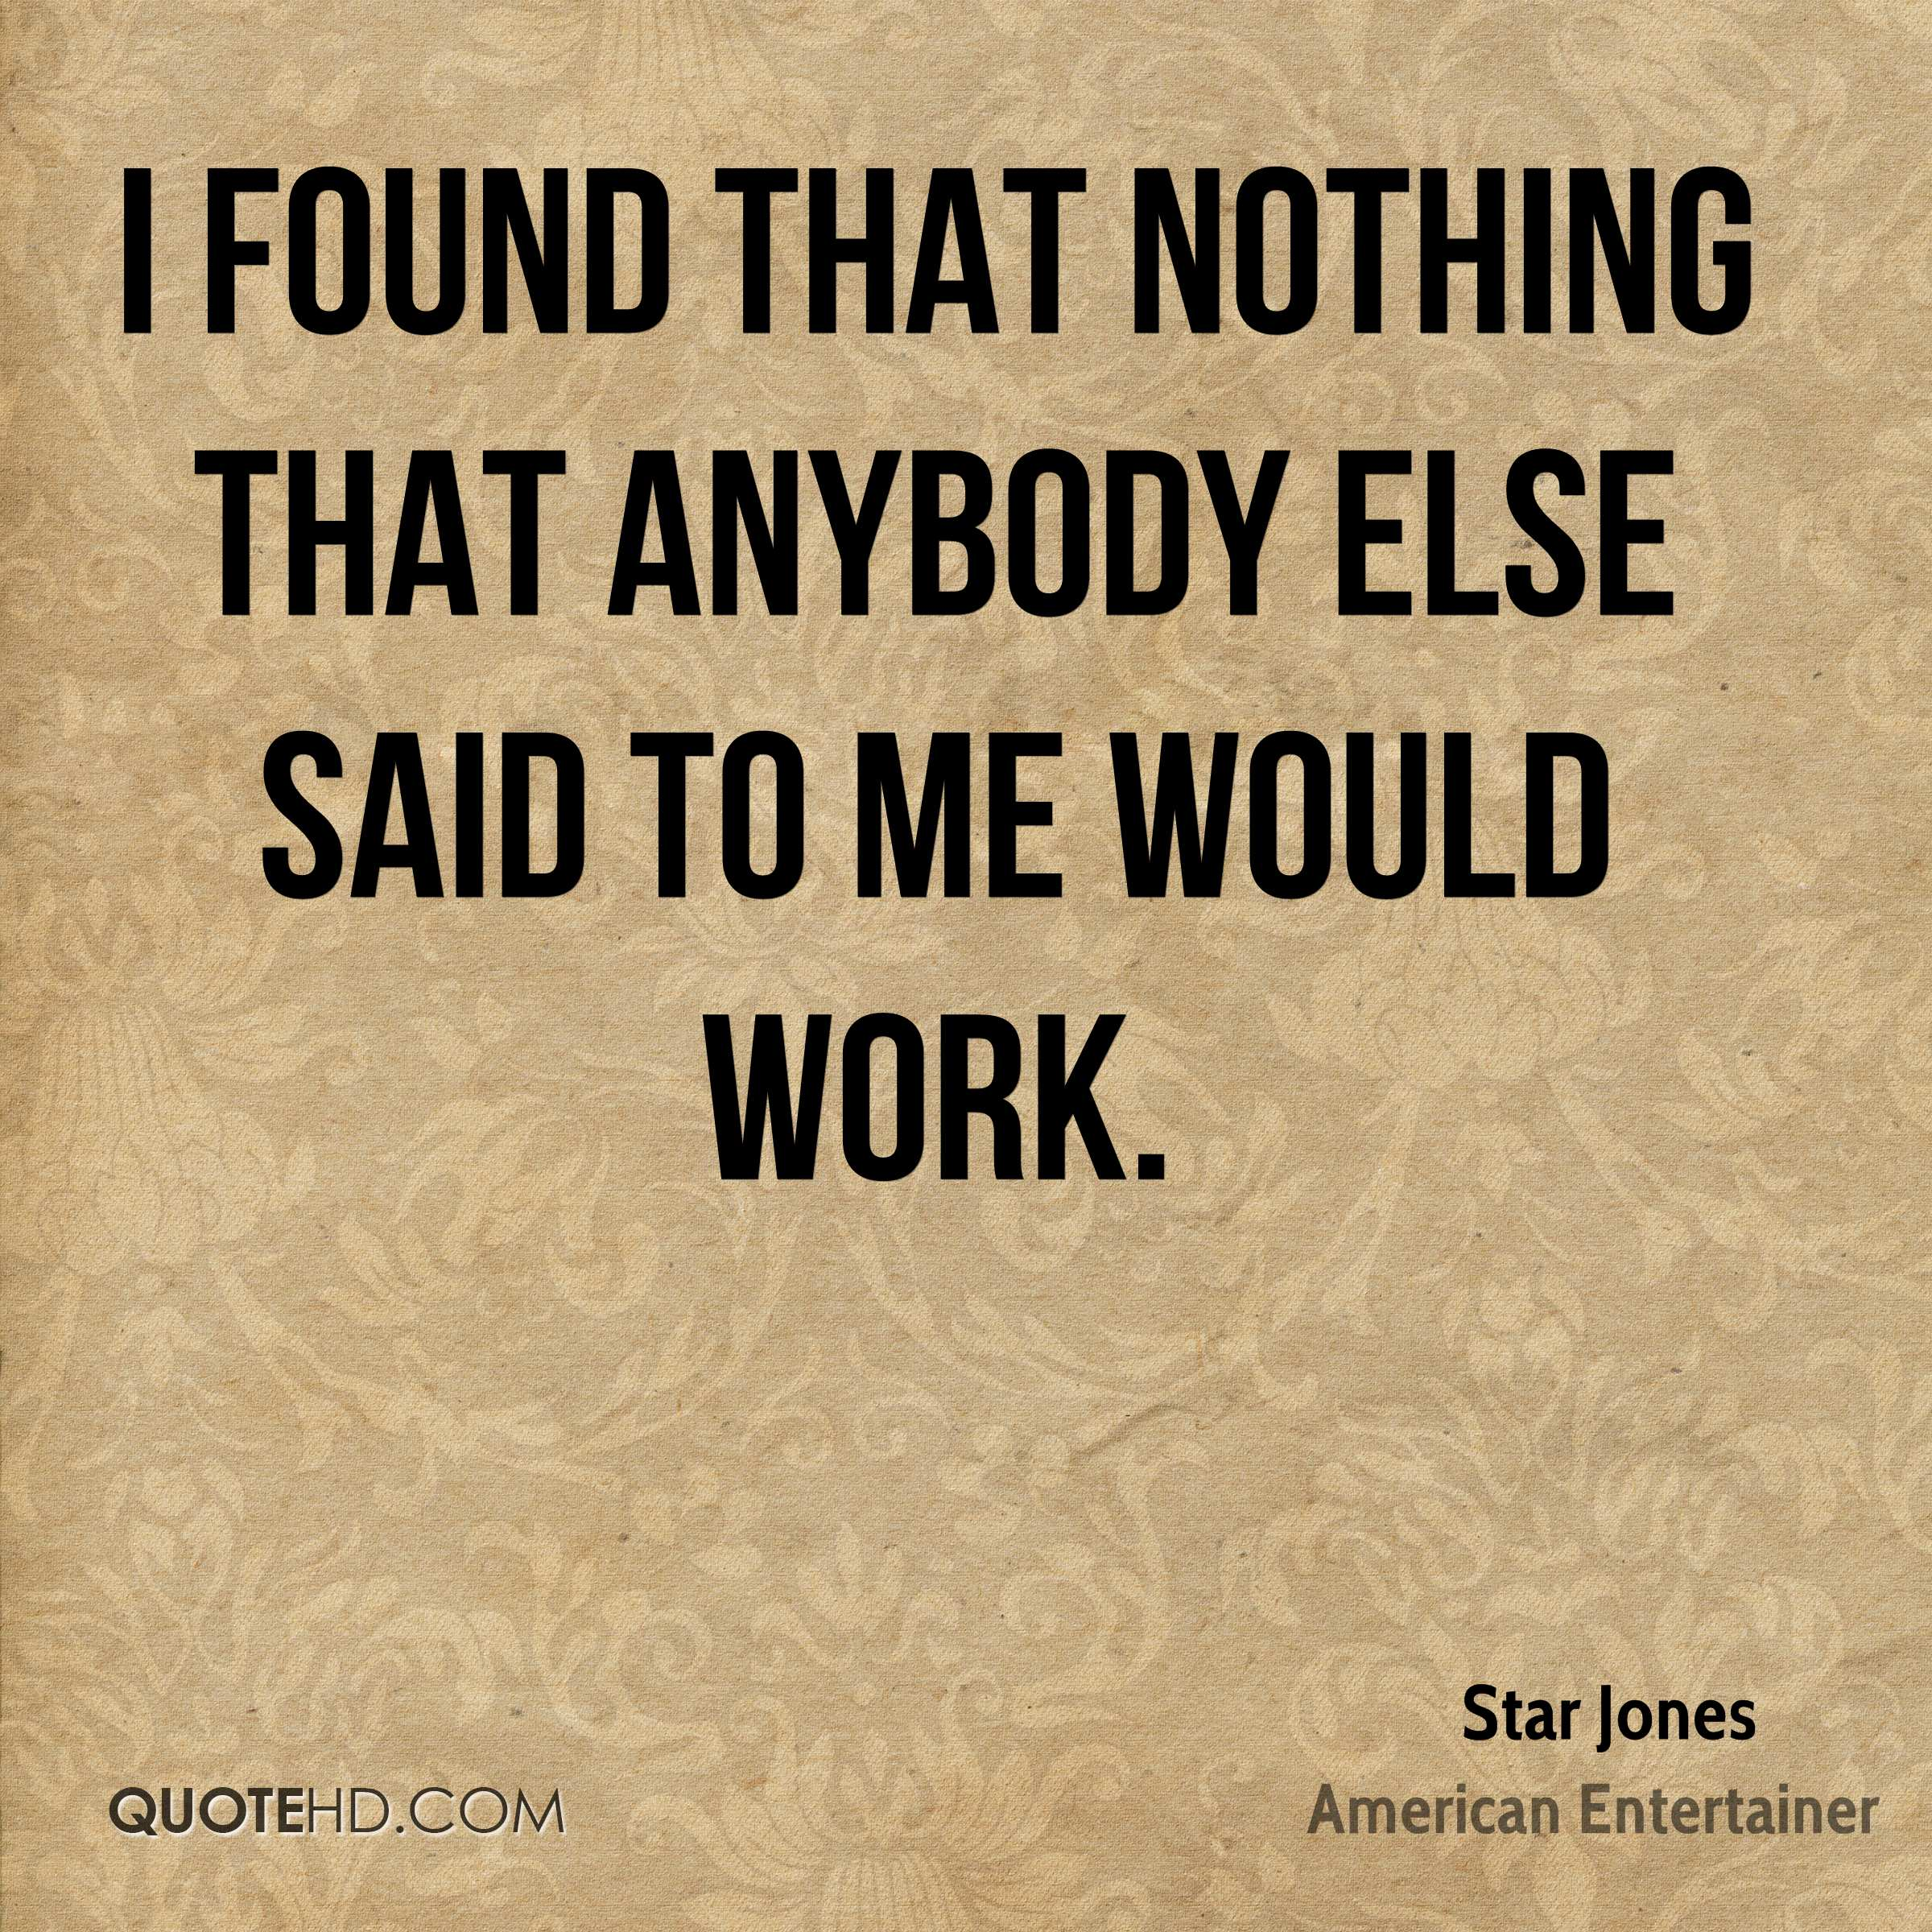 I found that nothing that anybody else said to me would work.